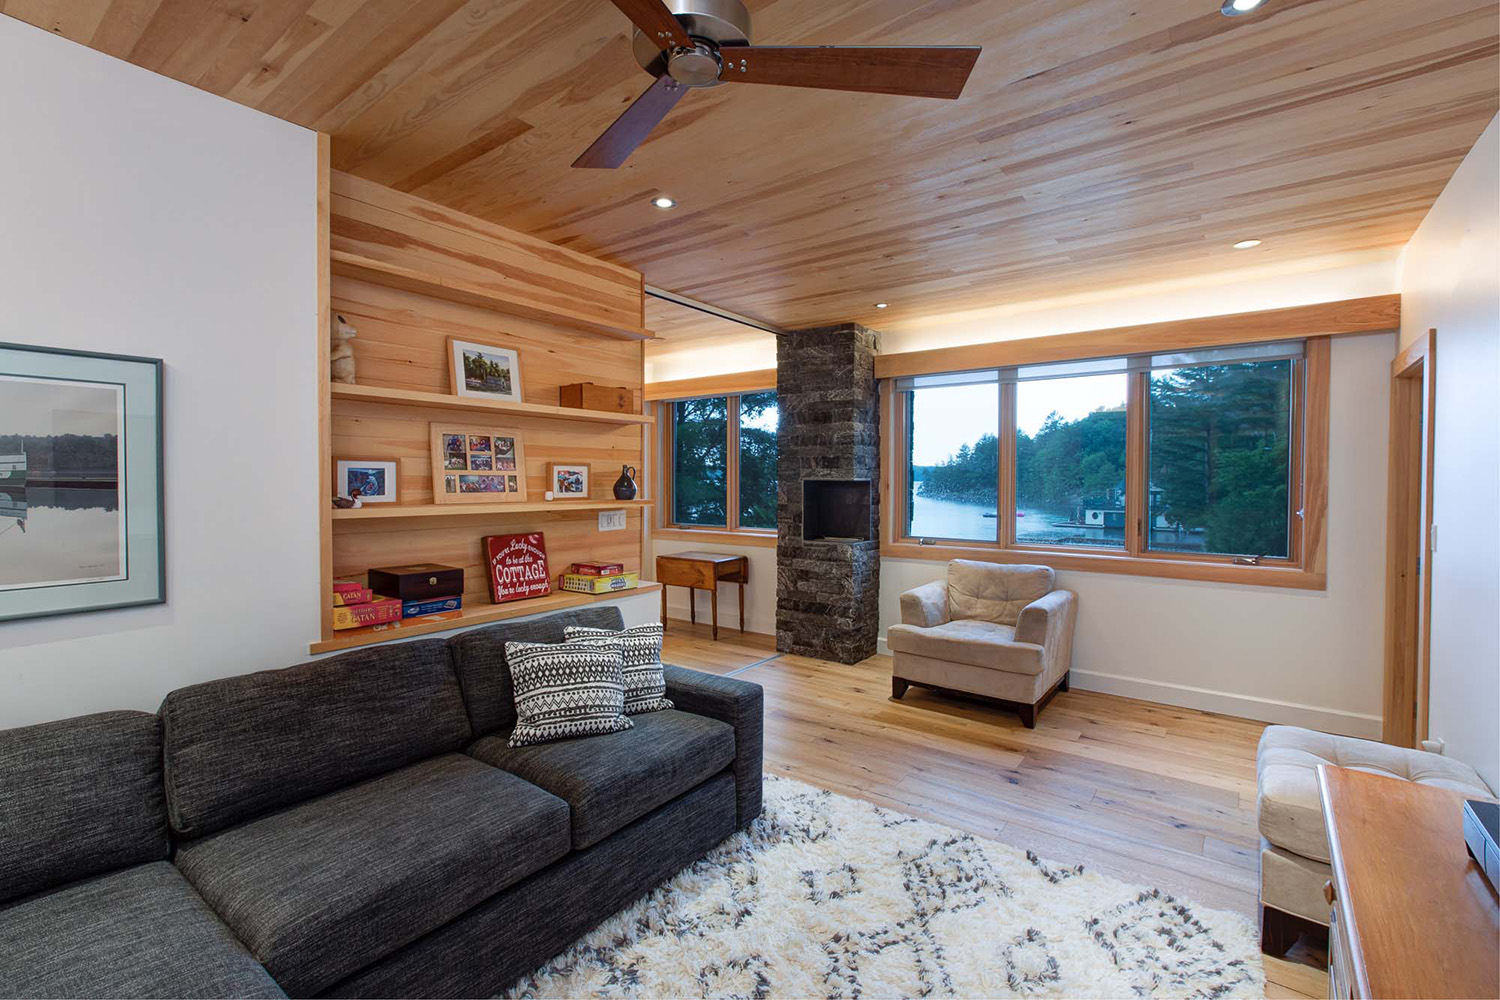 Canadian cottage siting room with built in clear pine shelving and modern gray sectional couch